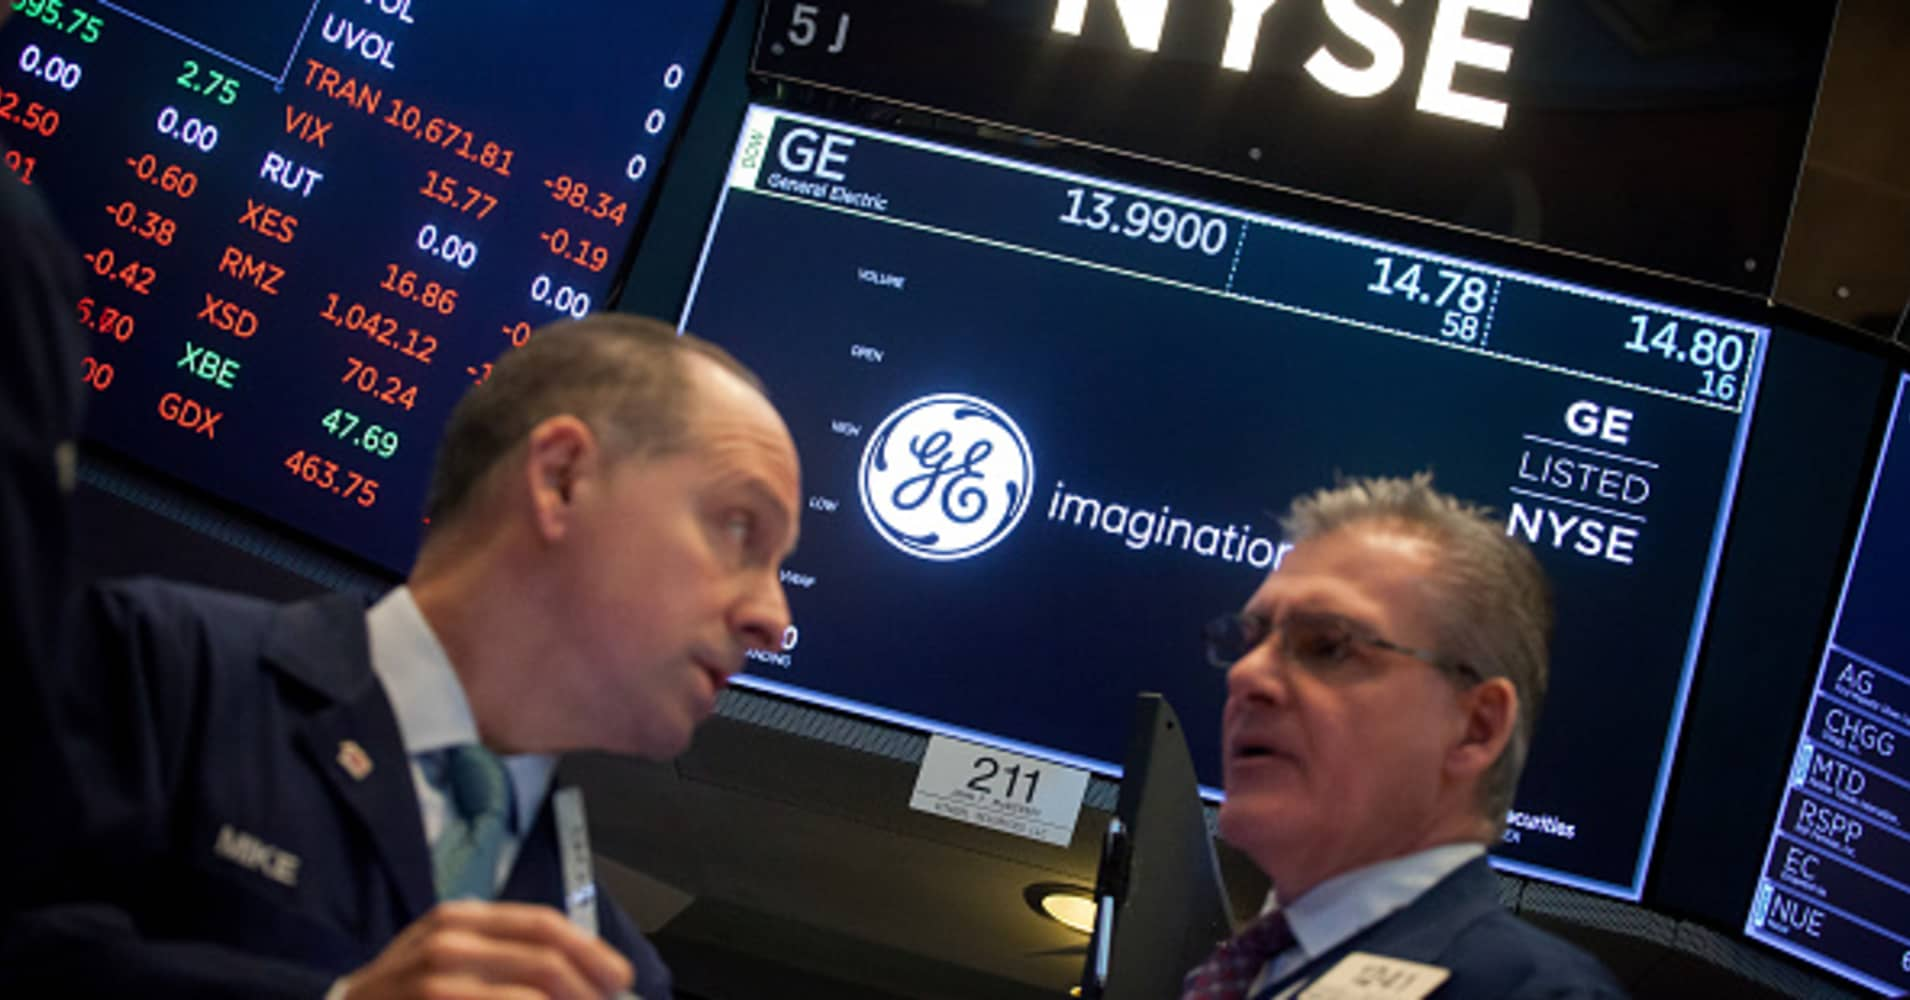 General Electric shares plummet—Jim Cramer and other experts react to the drop